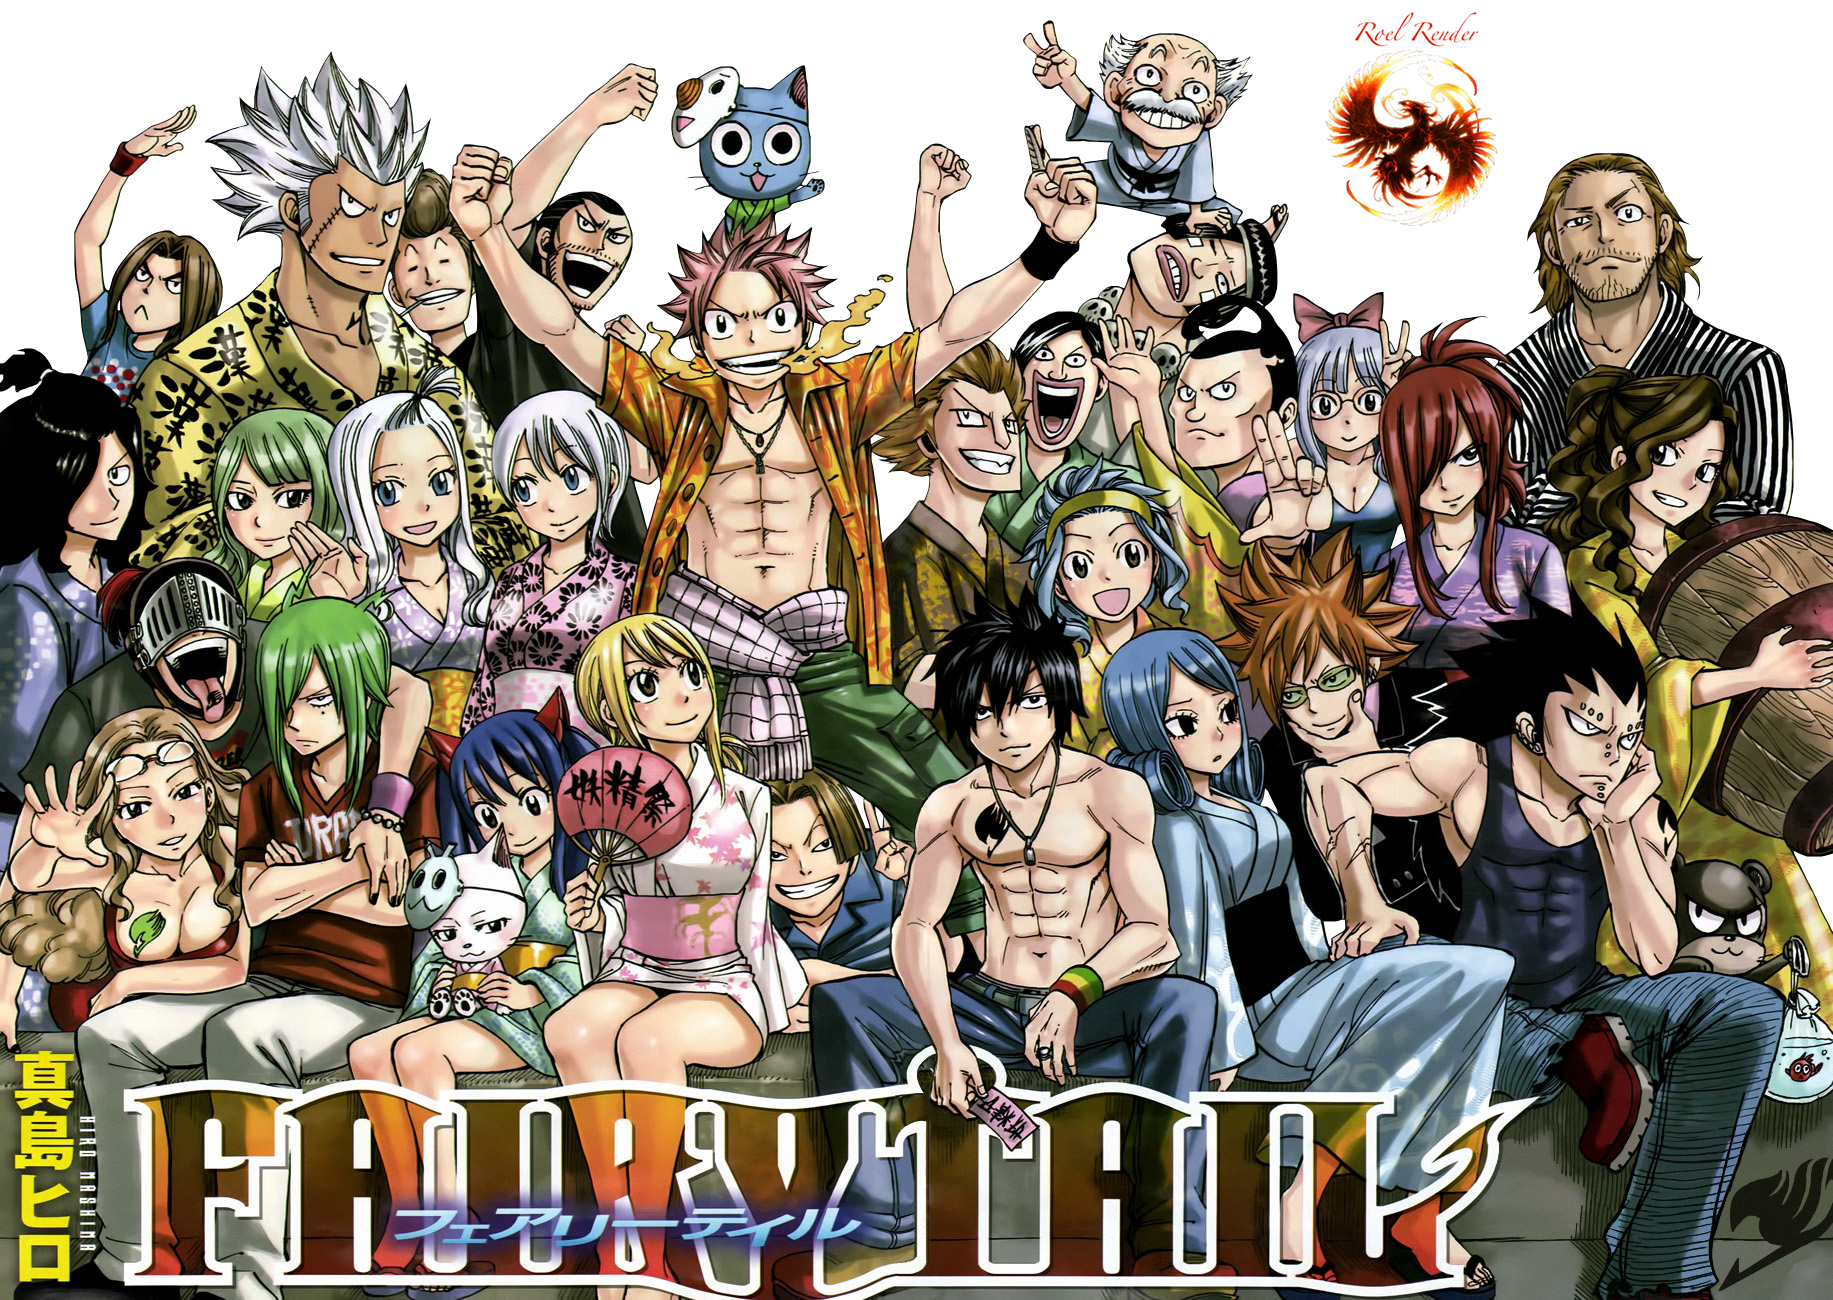 http://orig12.deviantart.net/a00d/f/2014/233/4/7/fairy_tail_render_2_by_roronoaroel-d5l6vme.png